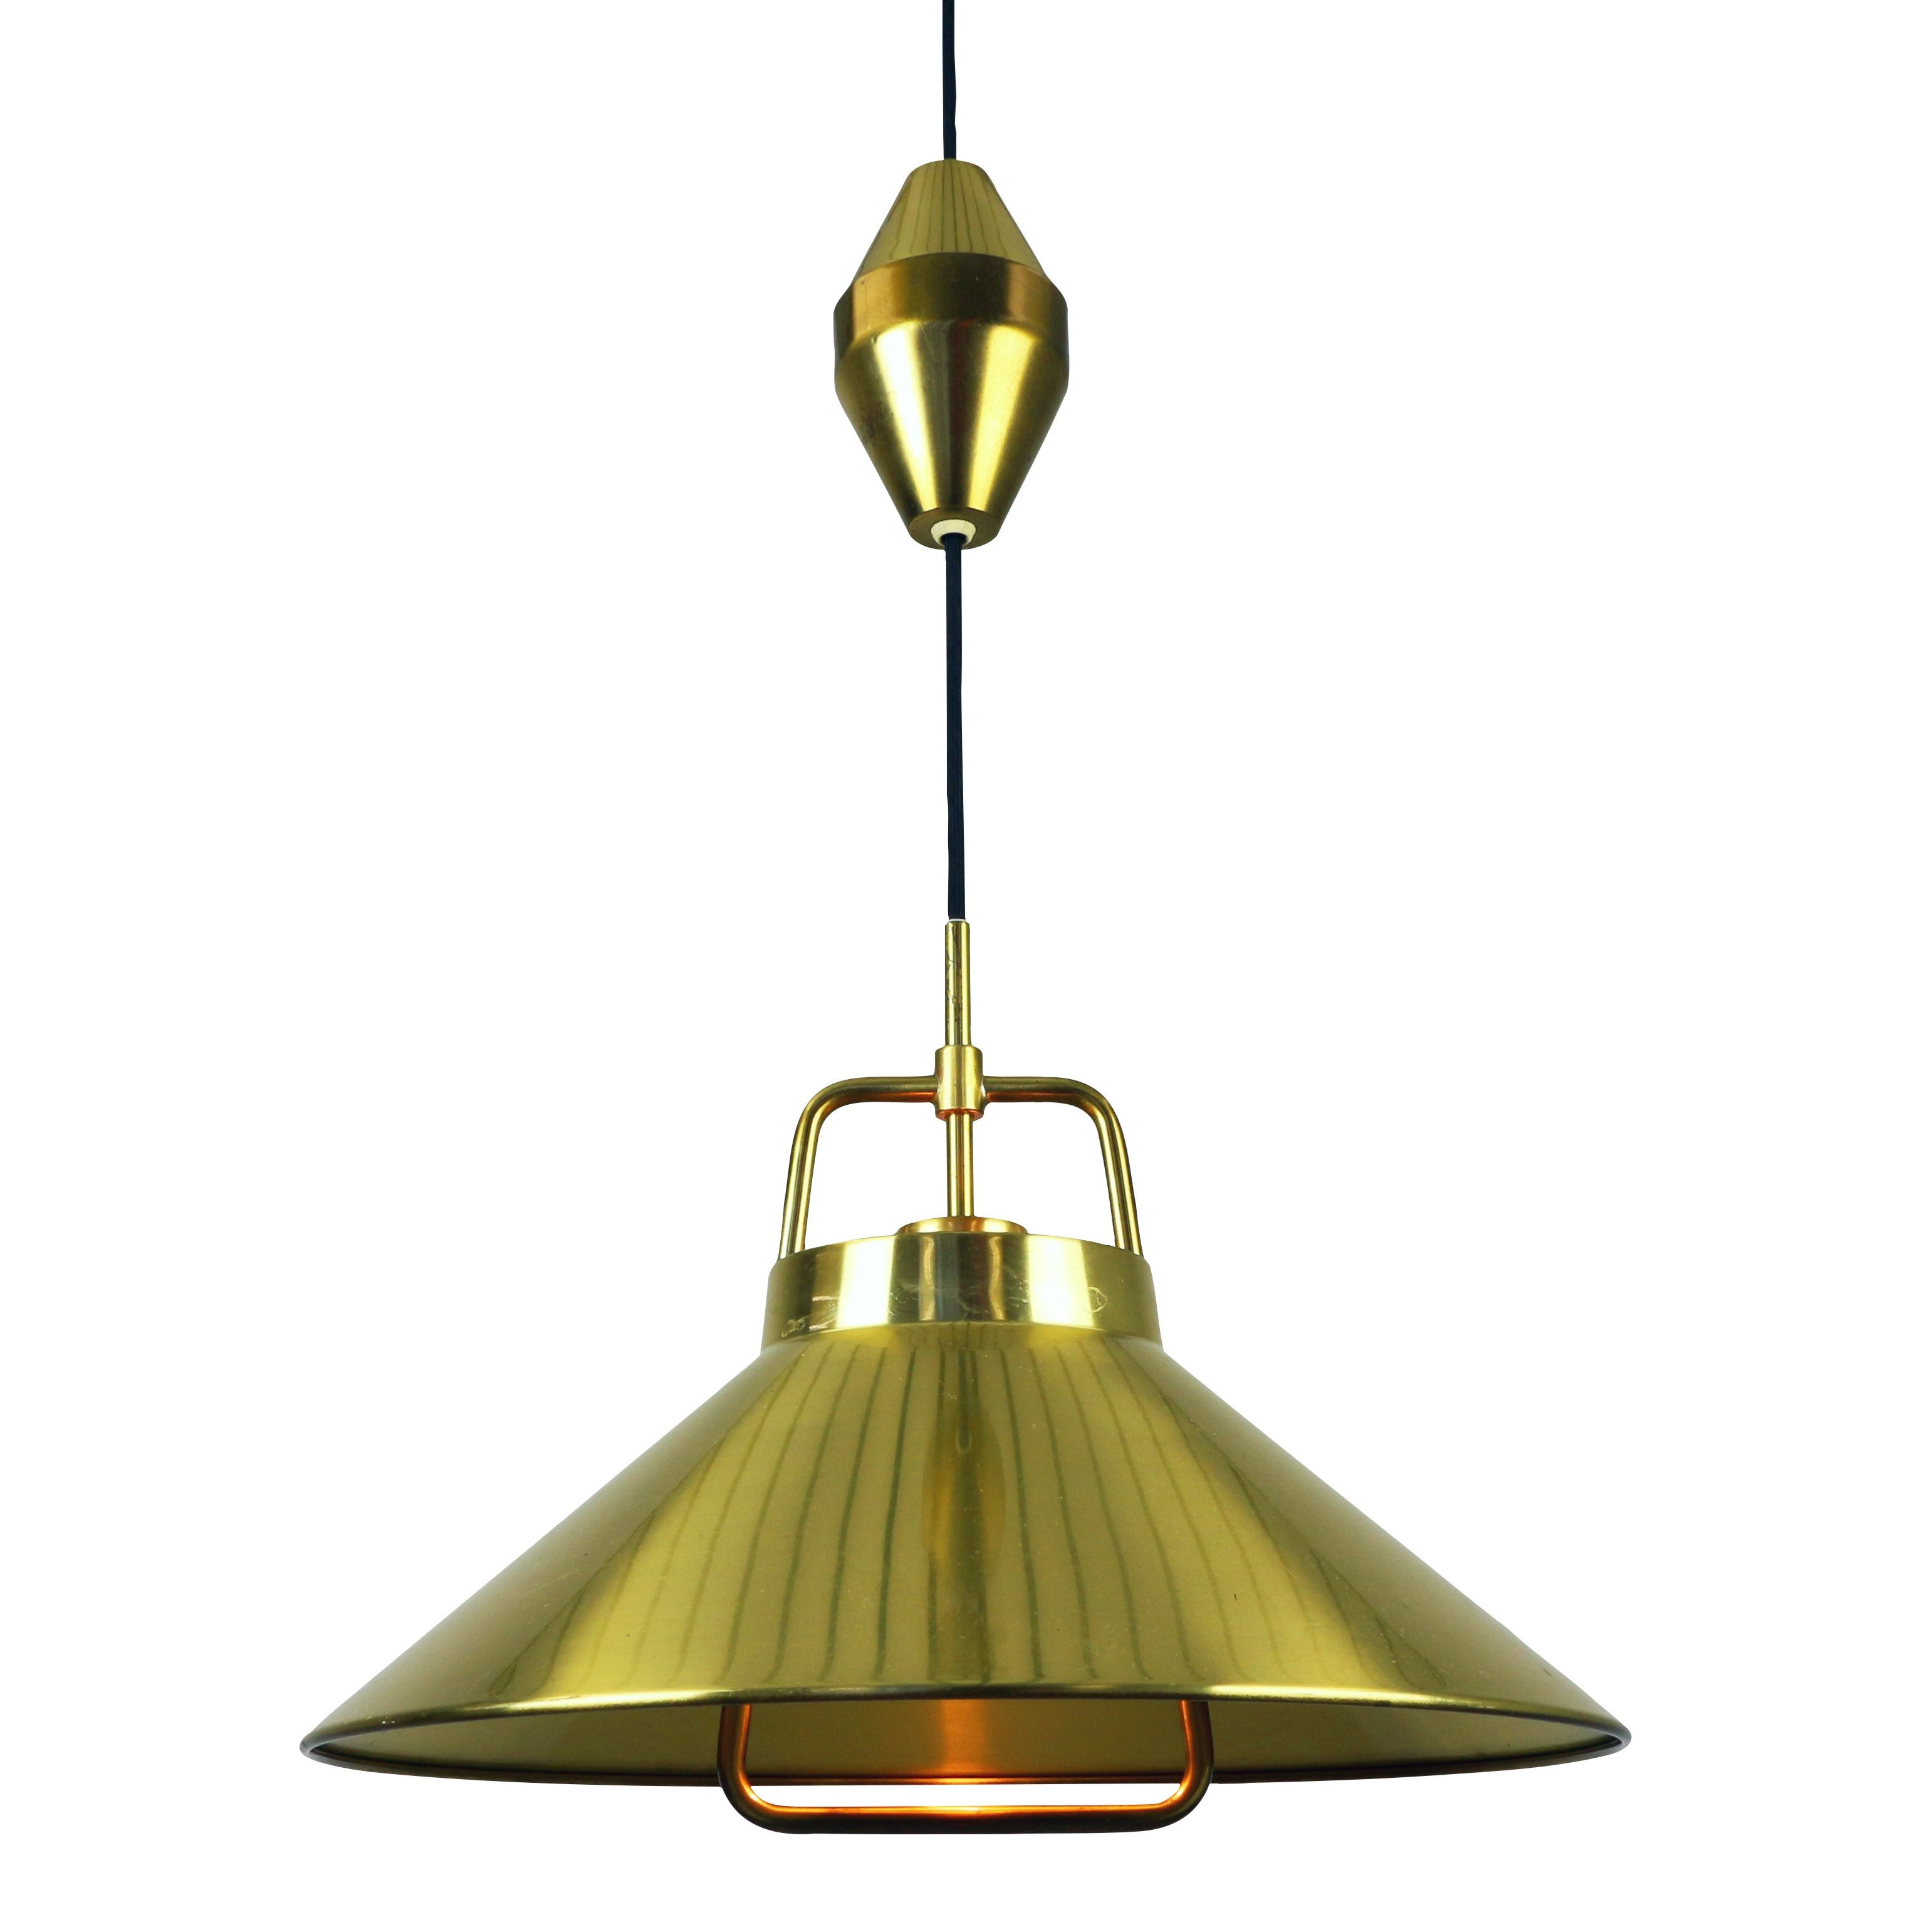 Pull Down Pendant Light Fixture Image Collections Home